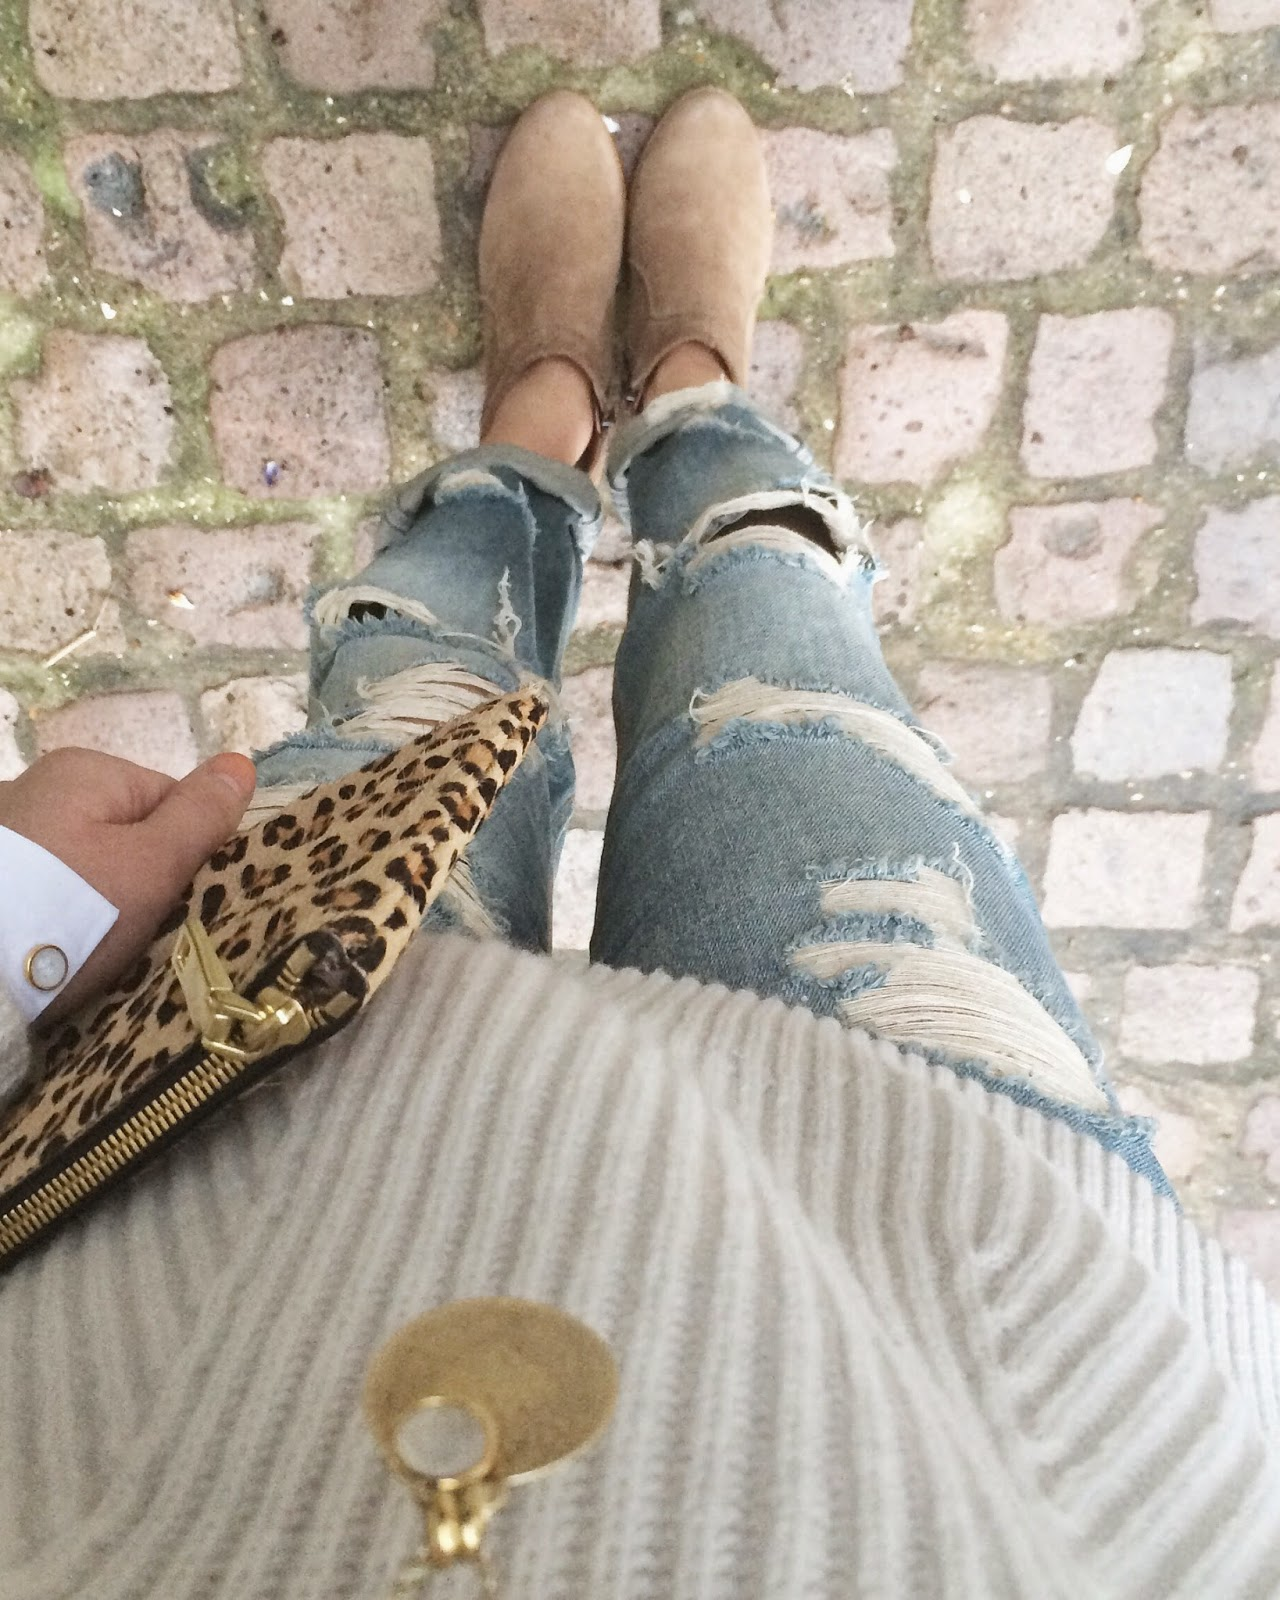 leopard print clutch, j crew clutch, gap cable knit jumper, cream white jumper, monica vinader pendant necklace, asos boyfriend jeans, russell and bromley ankle boots, isabel marant dickers boots